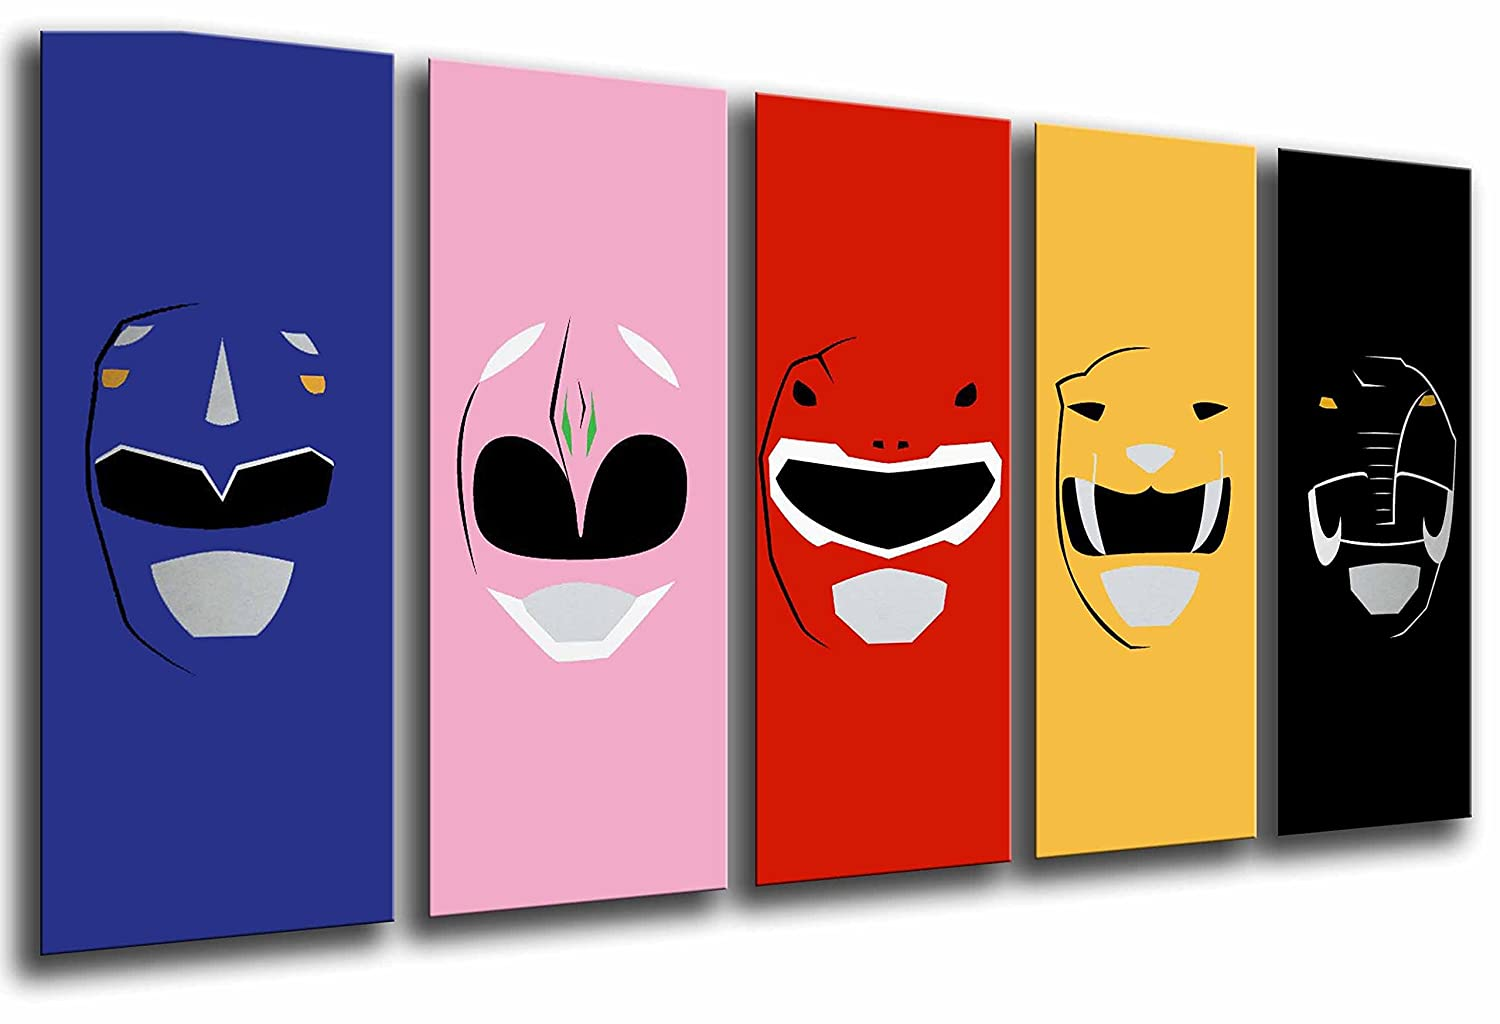 "MULTI Wood Printings Art Print Box Framed Picture Wall Hanging - characters the Power Rangers, (Total Size: 65"" x 24,4""), - Framed And Ready To Hang - ref. 26658 (Total Size: 65"" x 24 4"") Cuadros Camara"